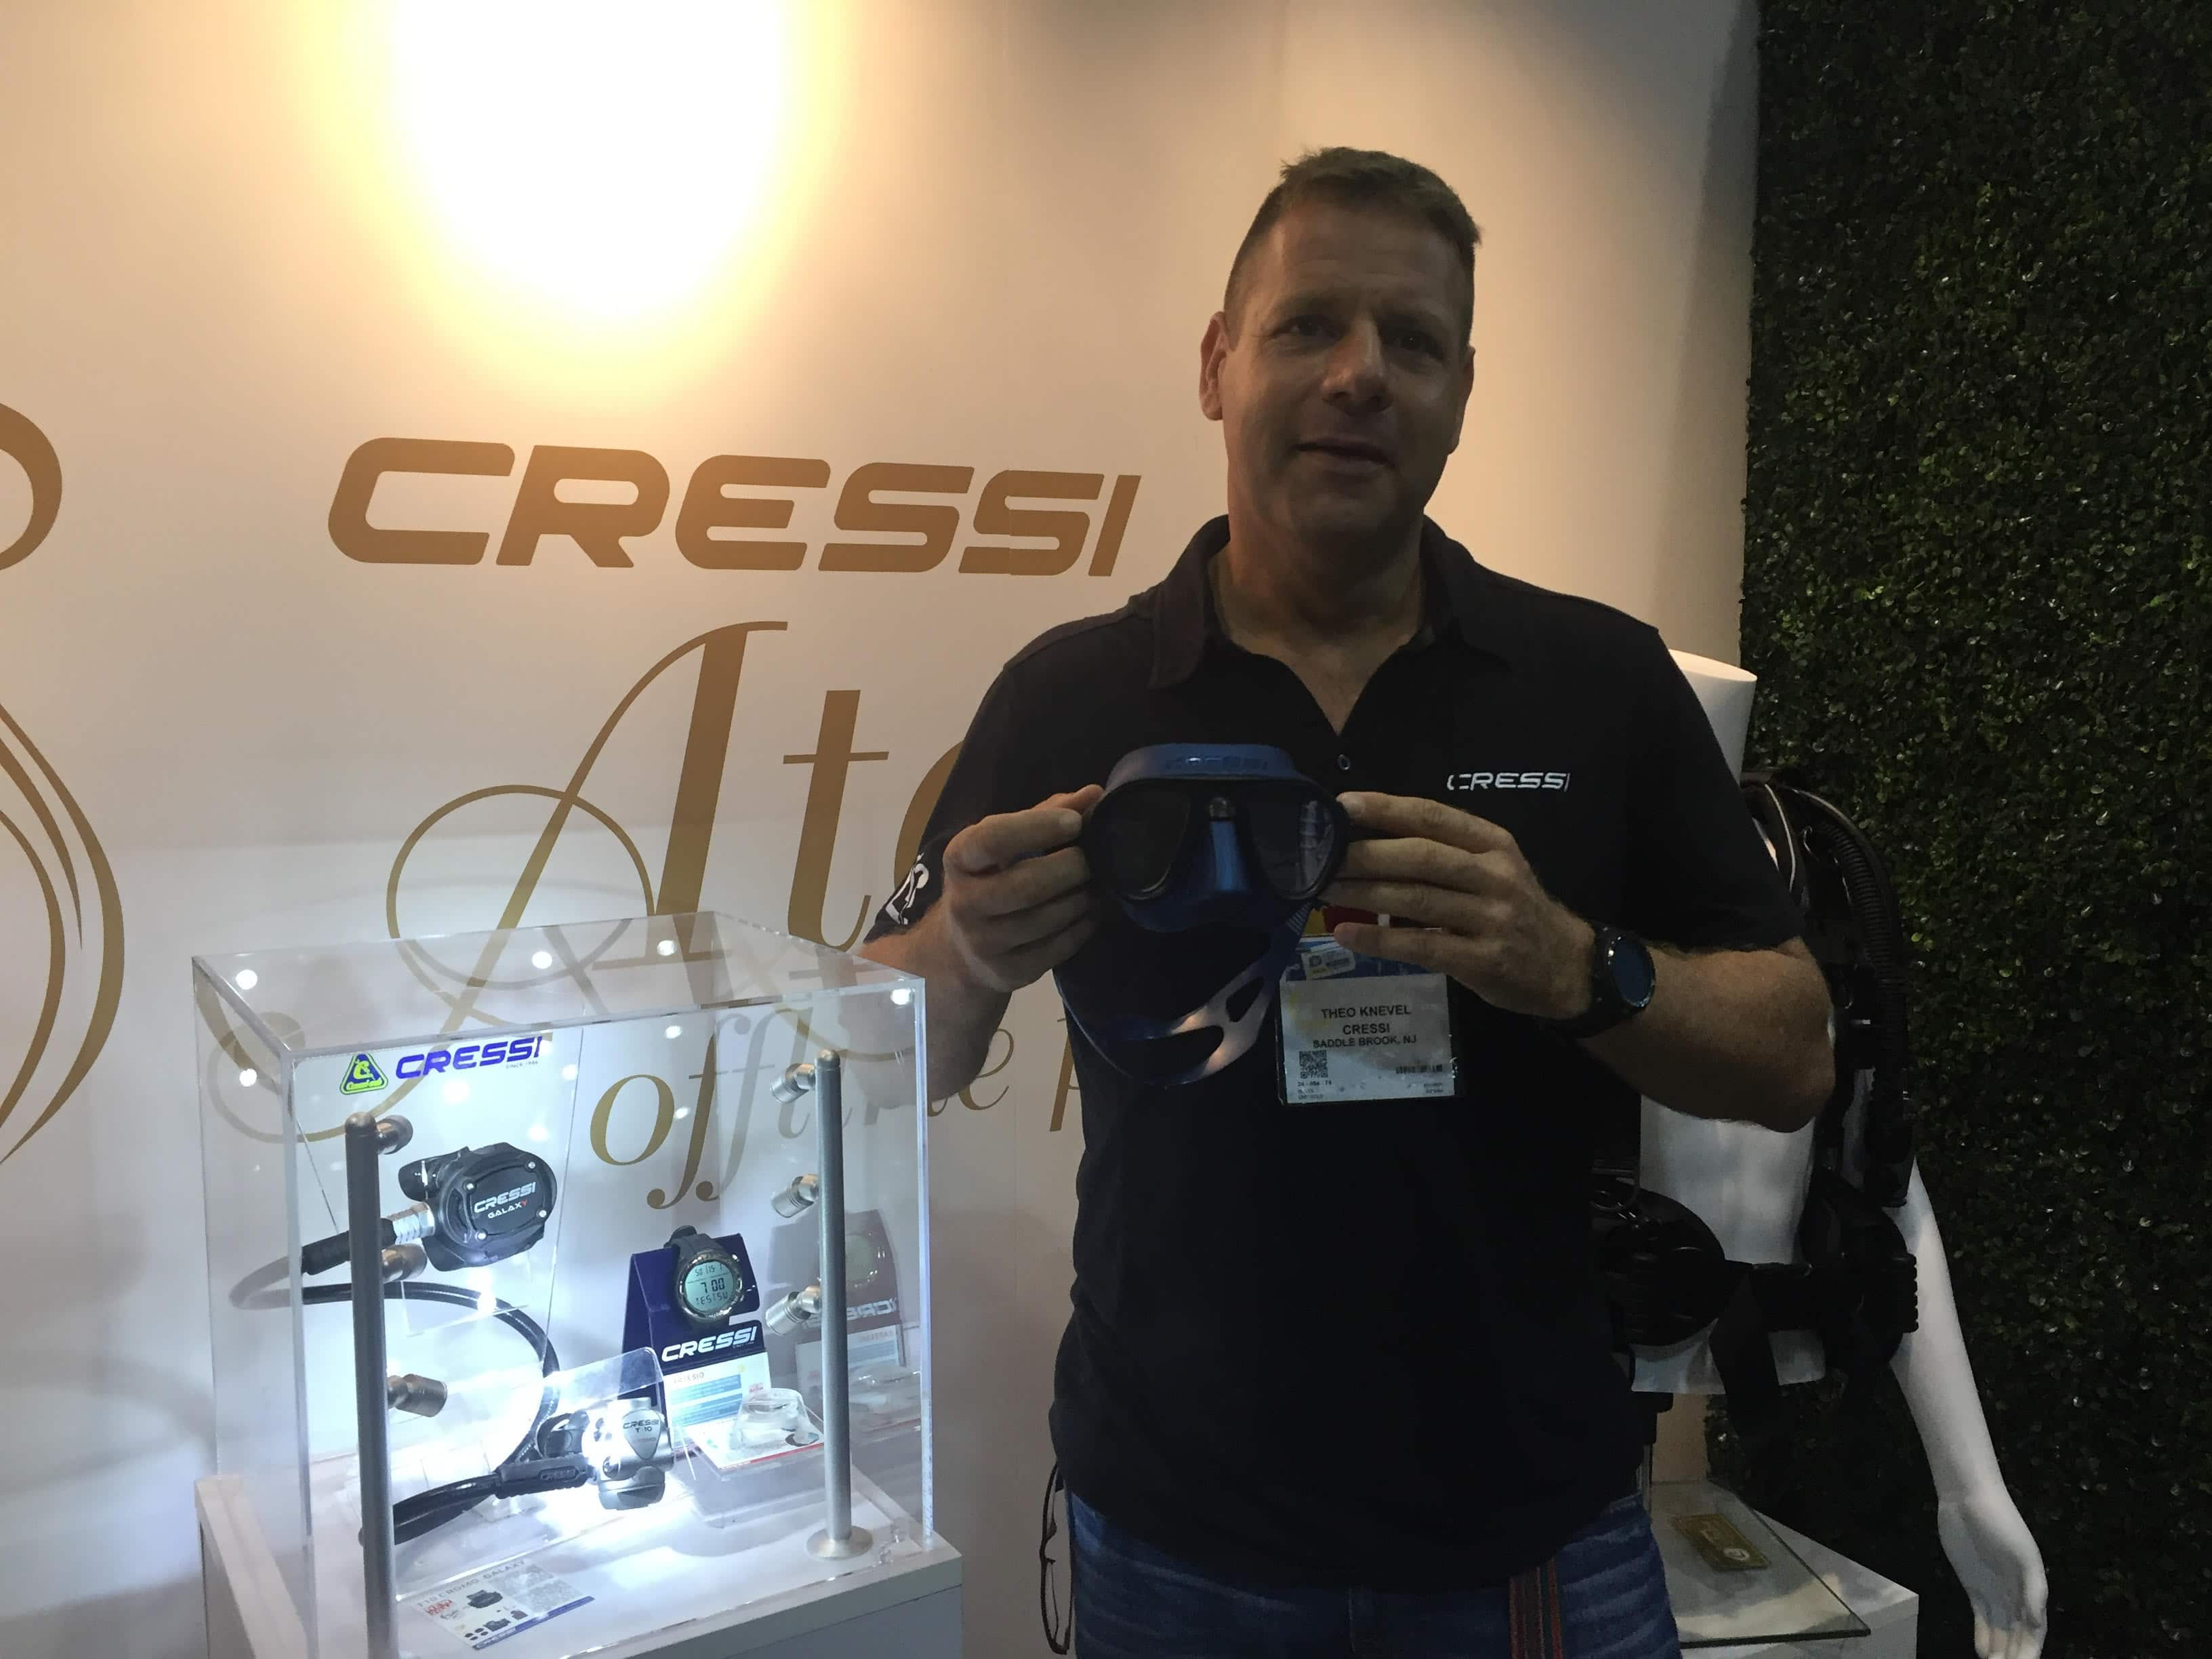 CRESSI Showcases Fog Stop System, Calibro Mask At DEMA Show 2017